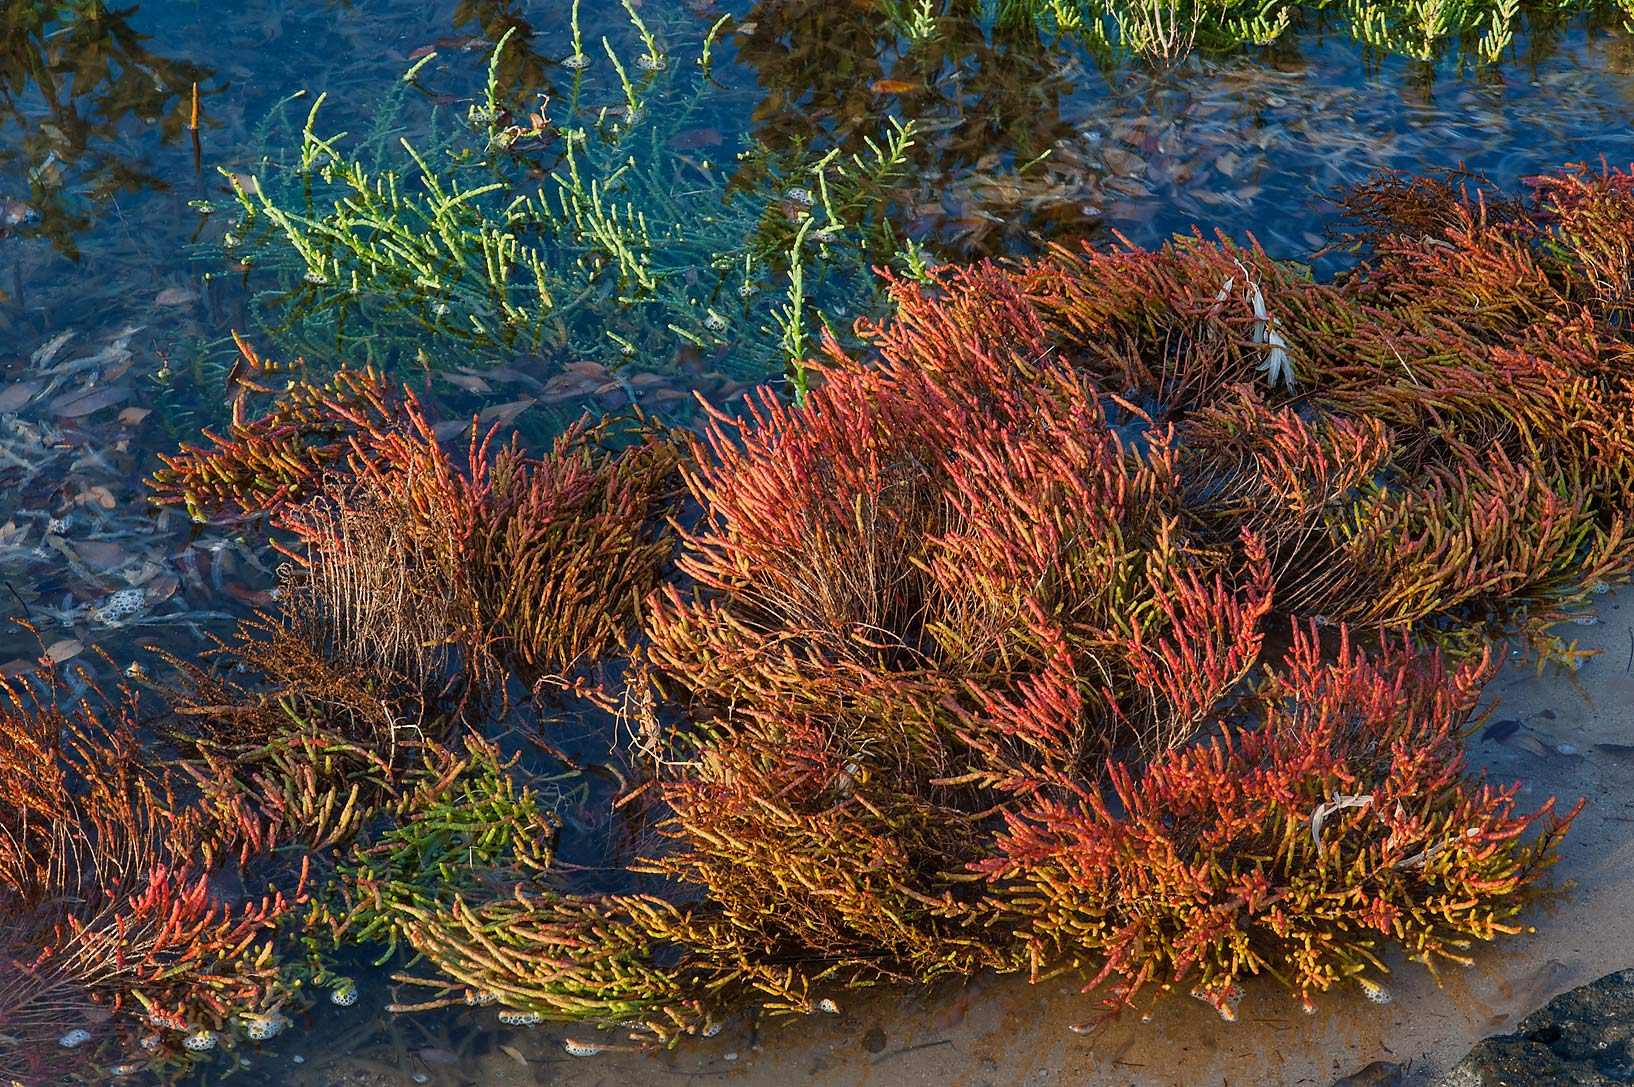 Inundated reddish plants of glasswort Salicornia...Jazirat Bin Ghanim). Al Khor, Qatar